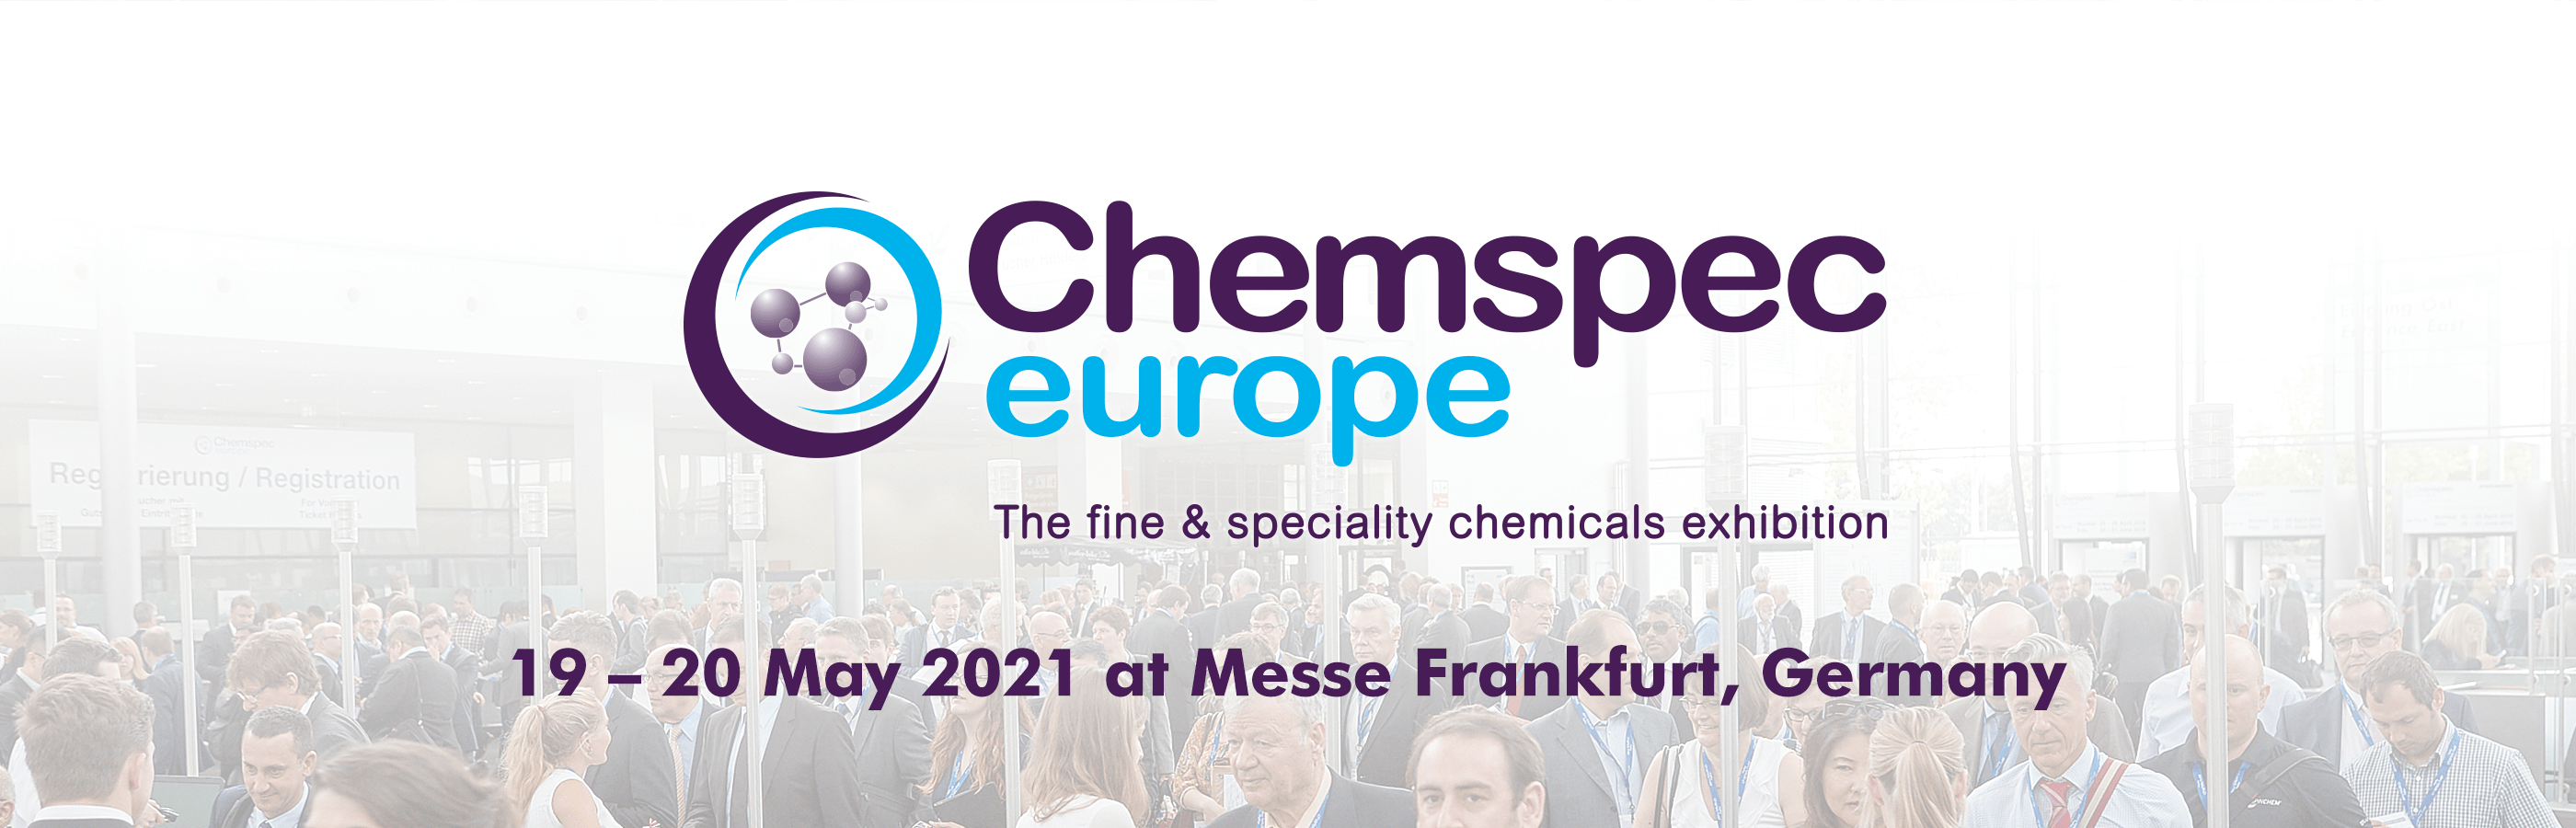 Chemspec Europe in Cologne